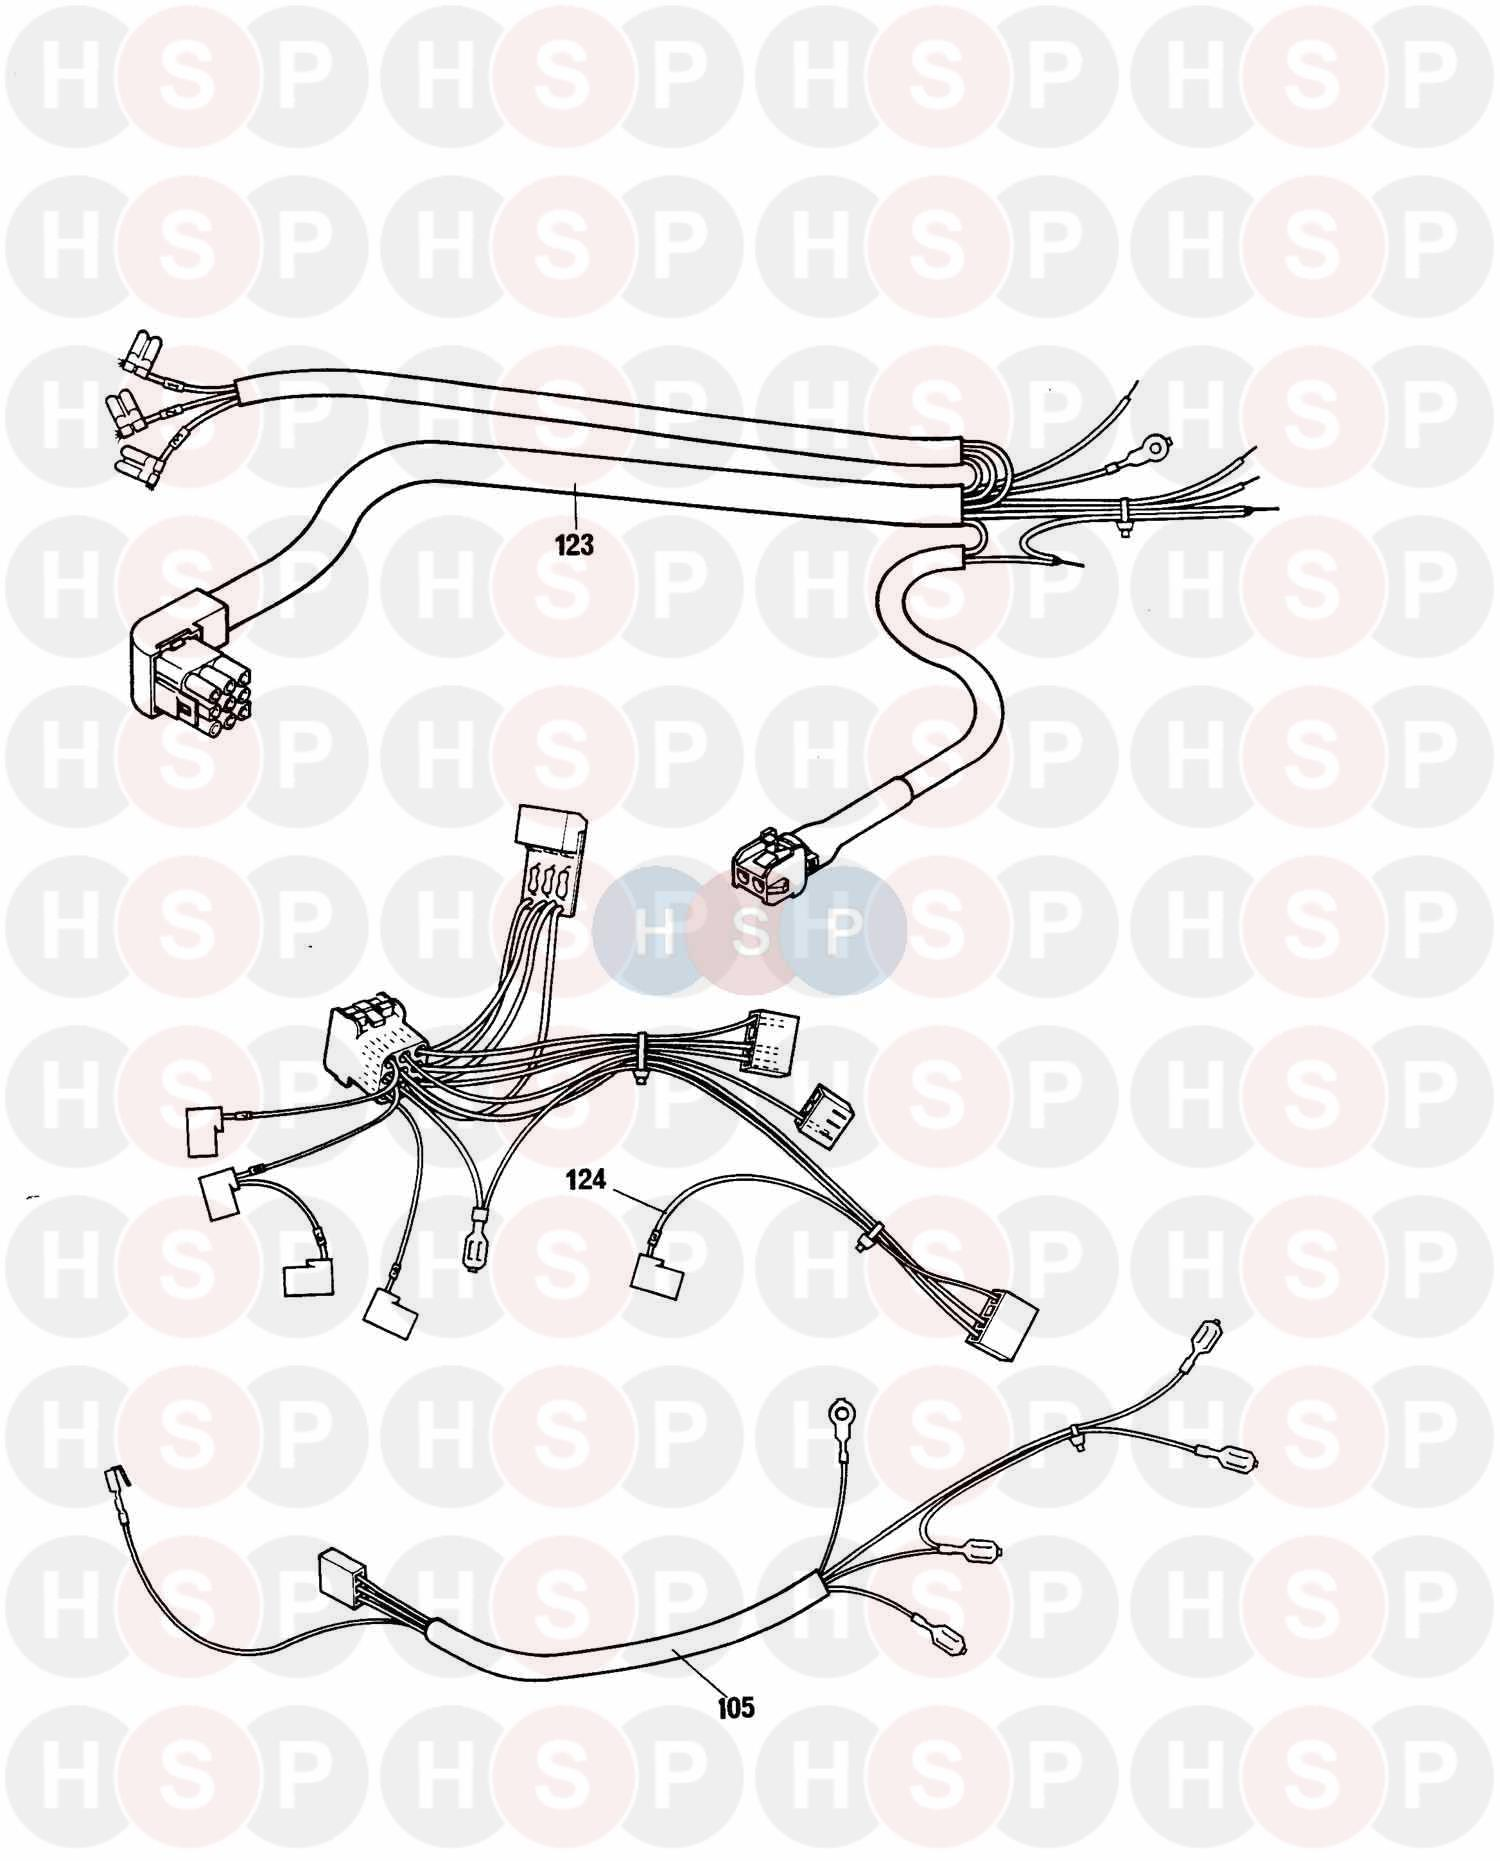 Baxi Solo Wm 50 4 Pf Ss Wiring Harness Diagram Heating Spare Parts Ek Click The To Open It On A New Page